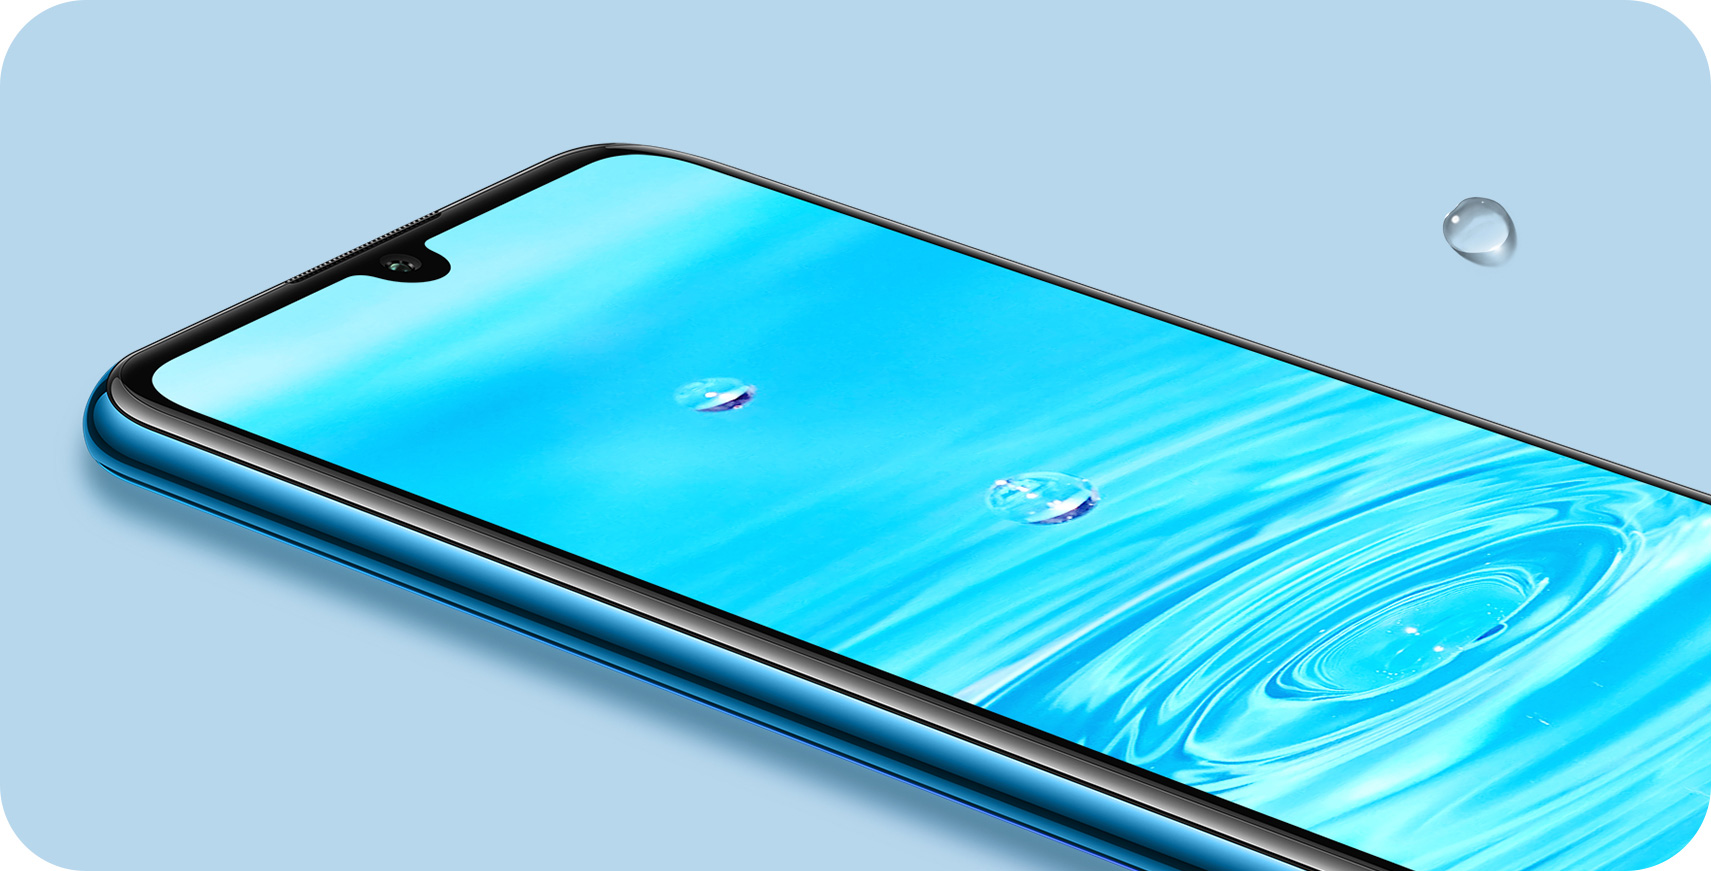 Huawei P30 lite Dewdrop Display